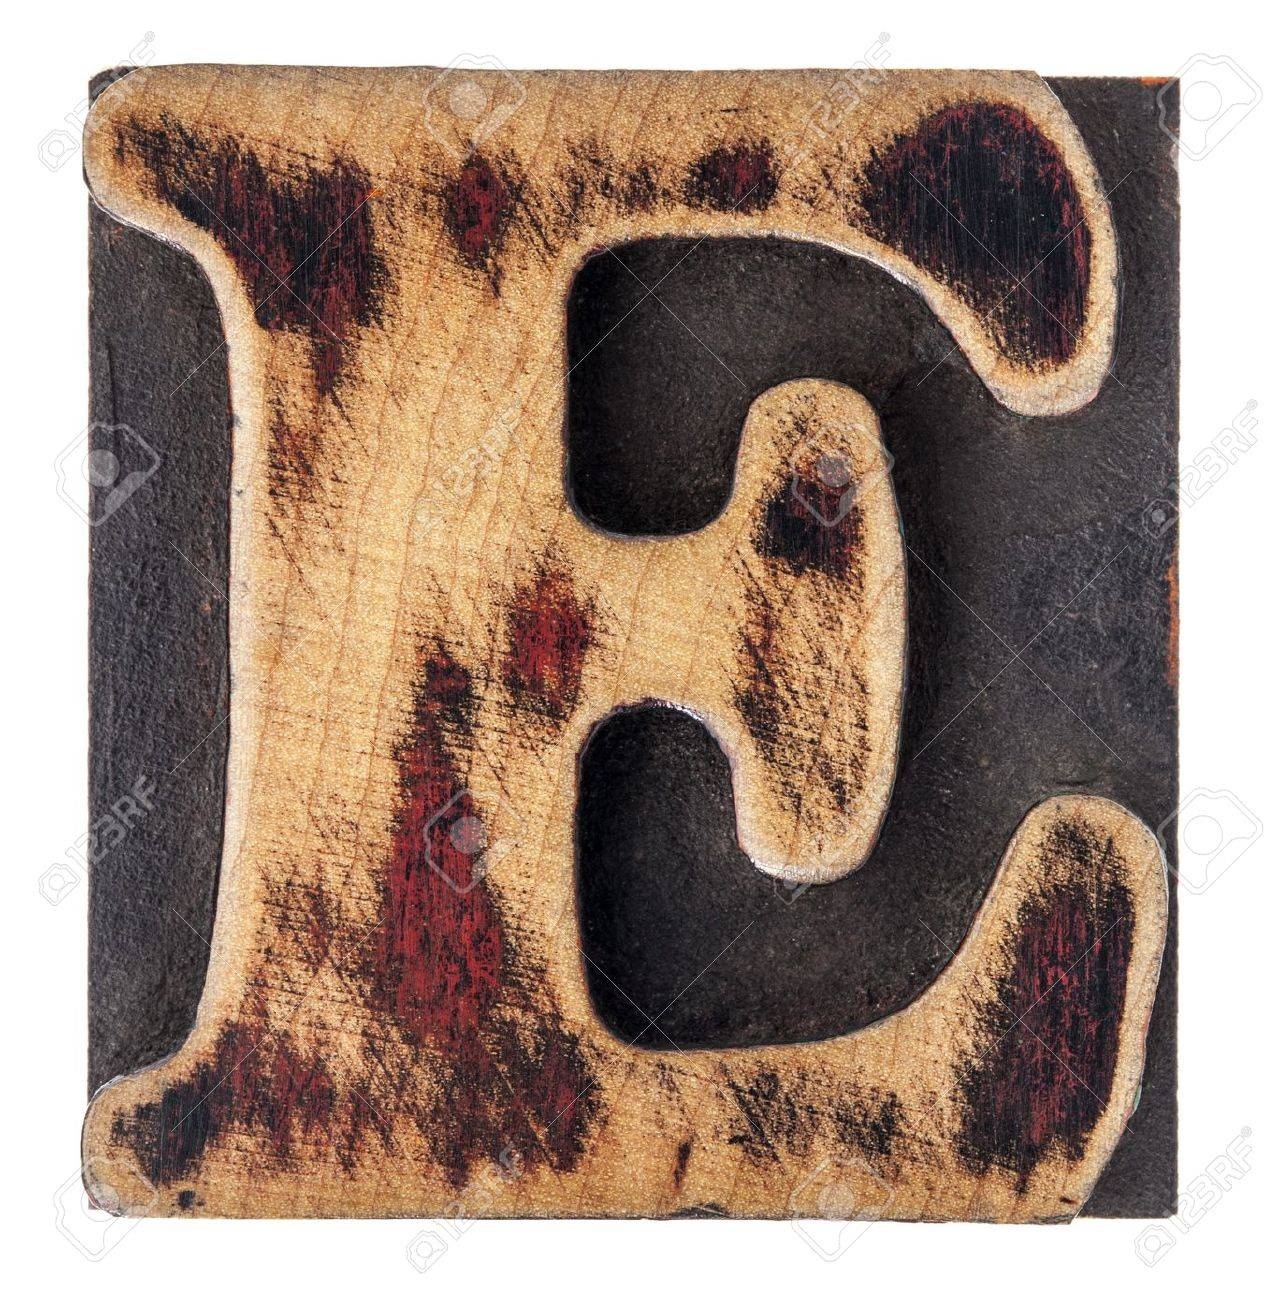 letter E in isolated vintage letterpress wood type printing block Stock Photo - 17155623